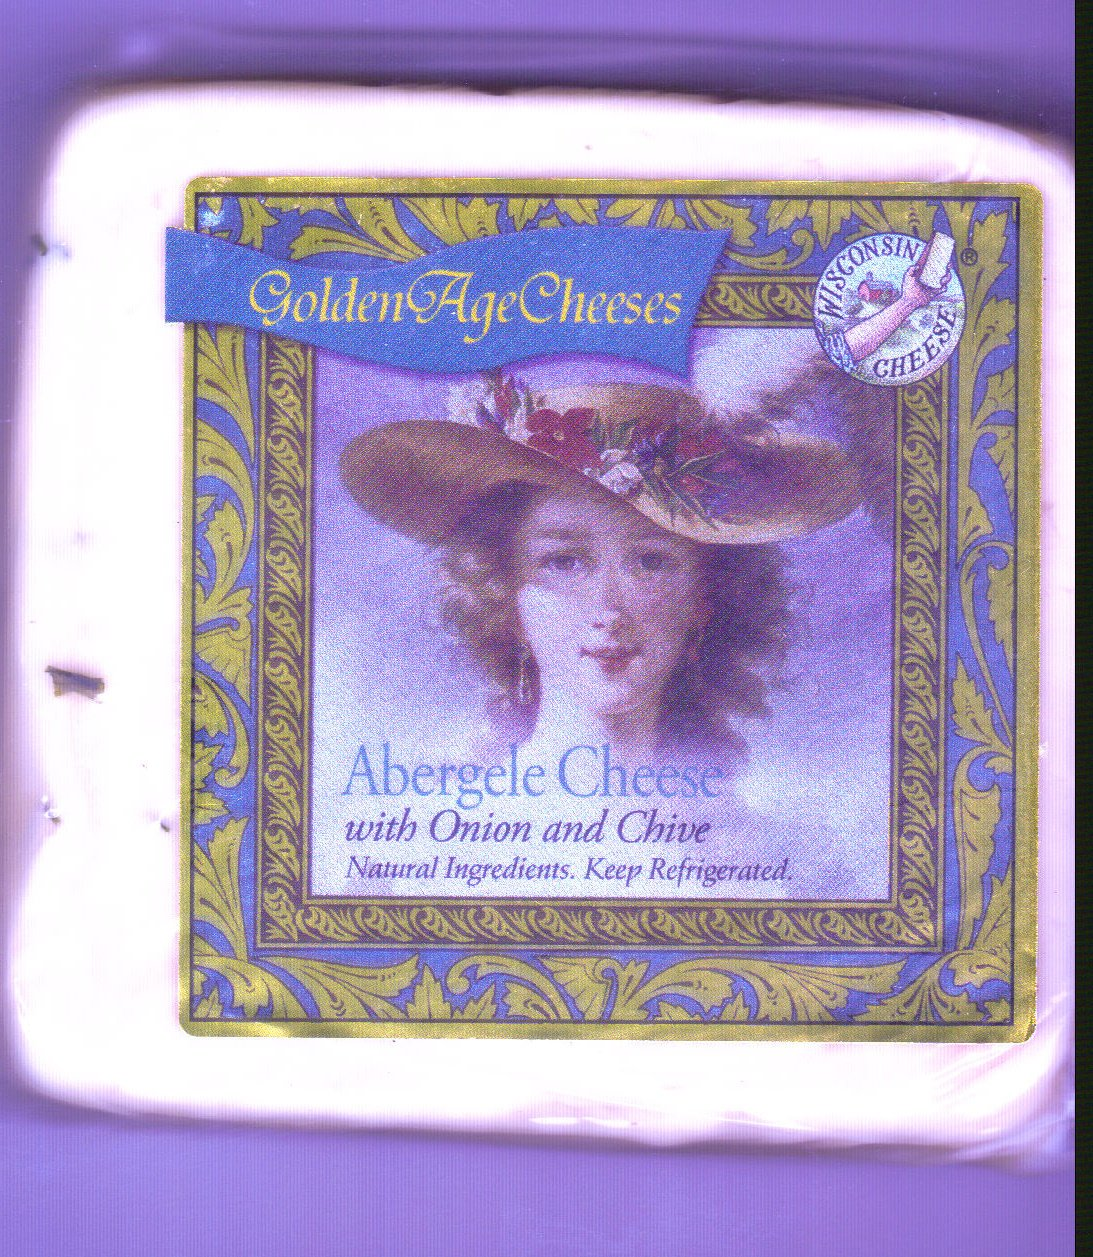 Golden Age Cheeses Onion and chive 2lbs Real Wisconsin Cheese